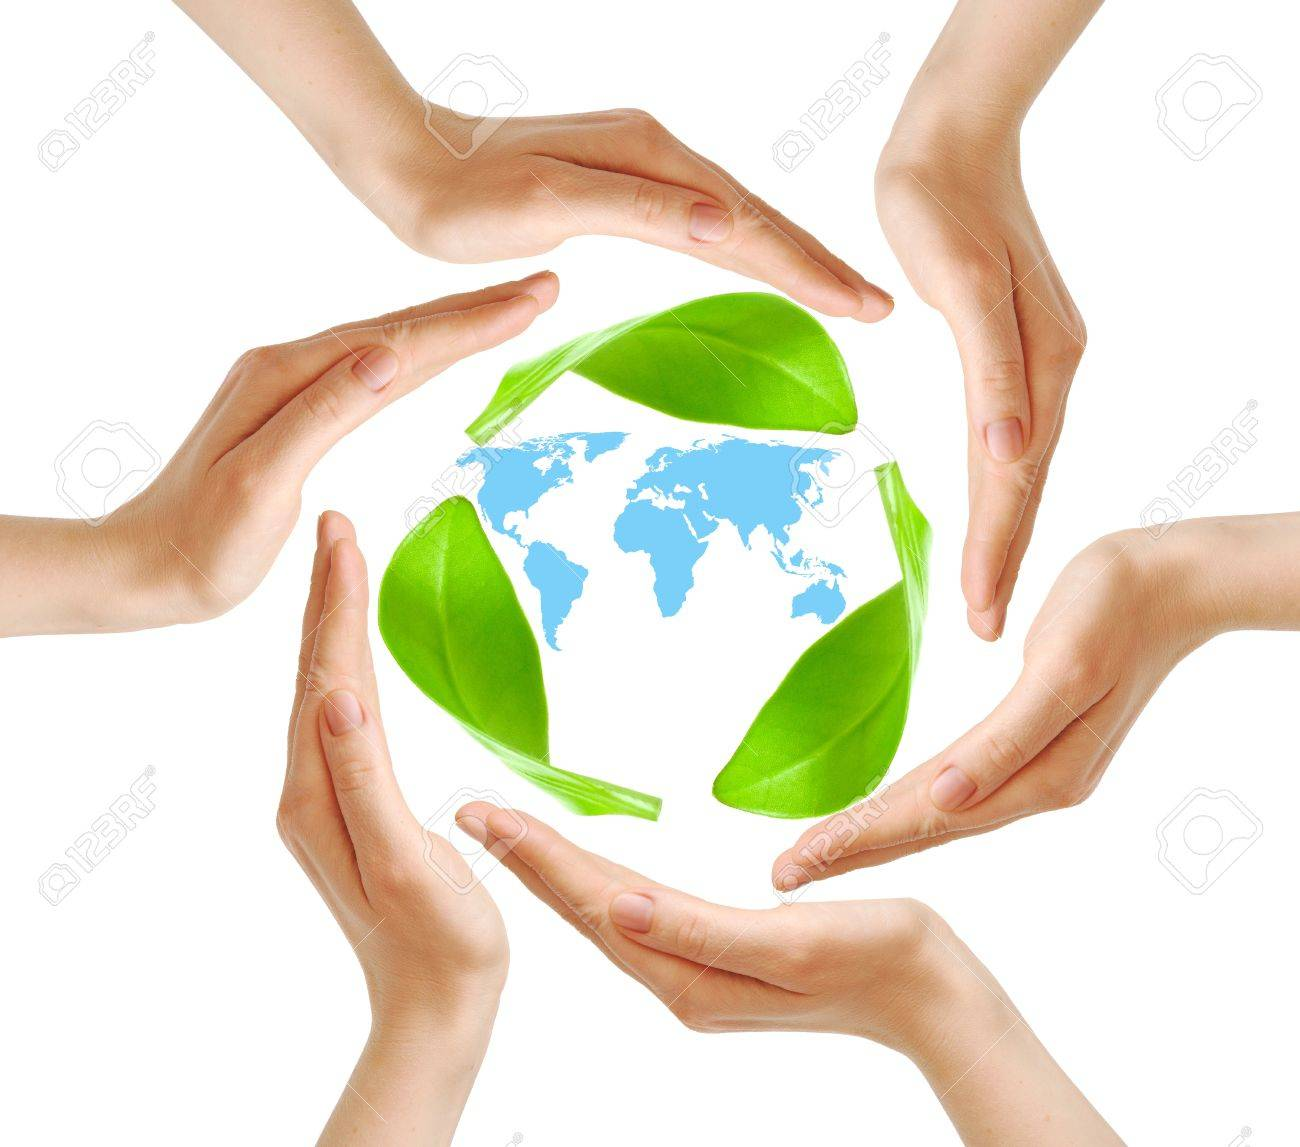 Conceptual safety symbol made from hands over world map Stock Photo - 9331024